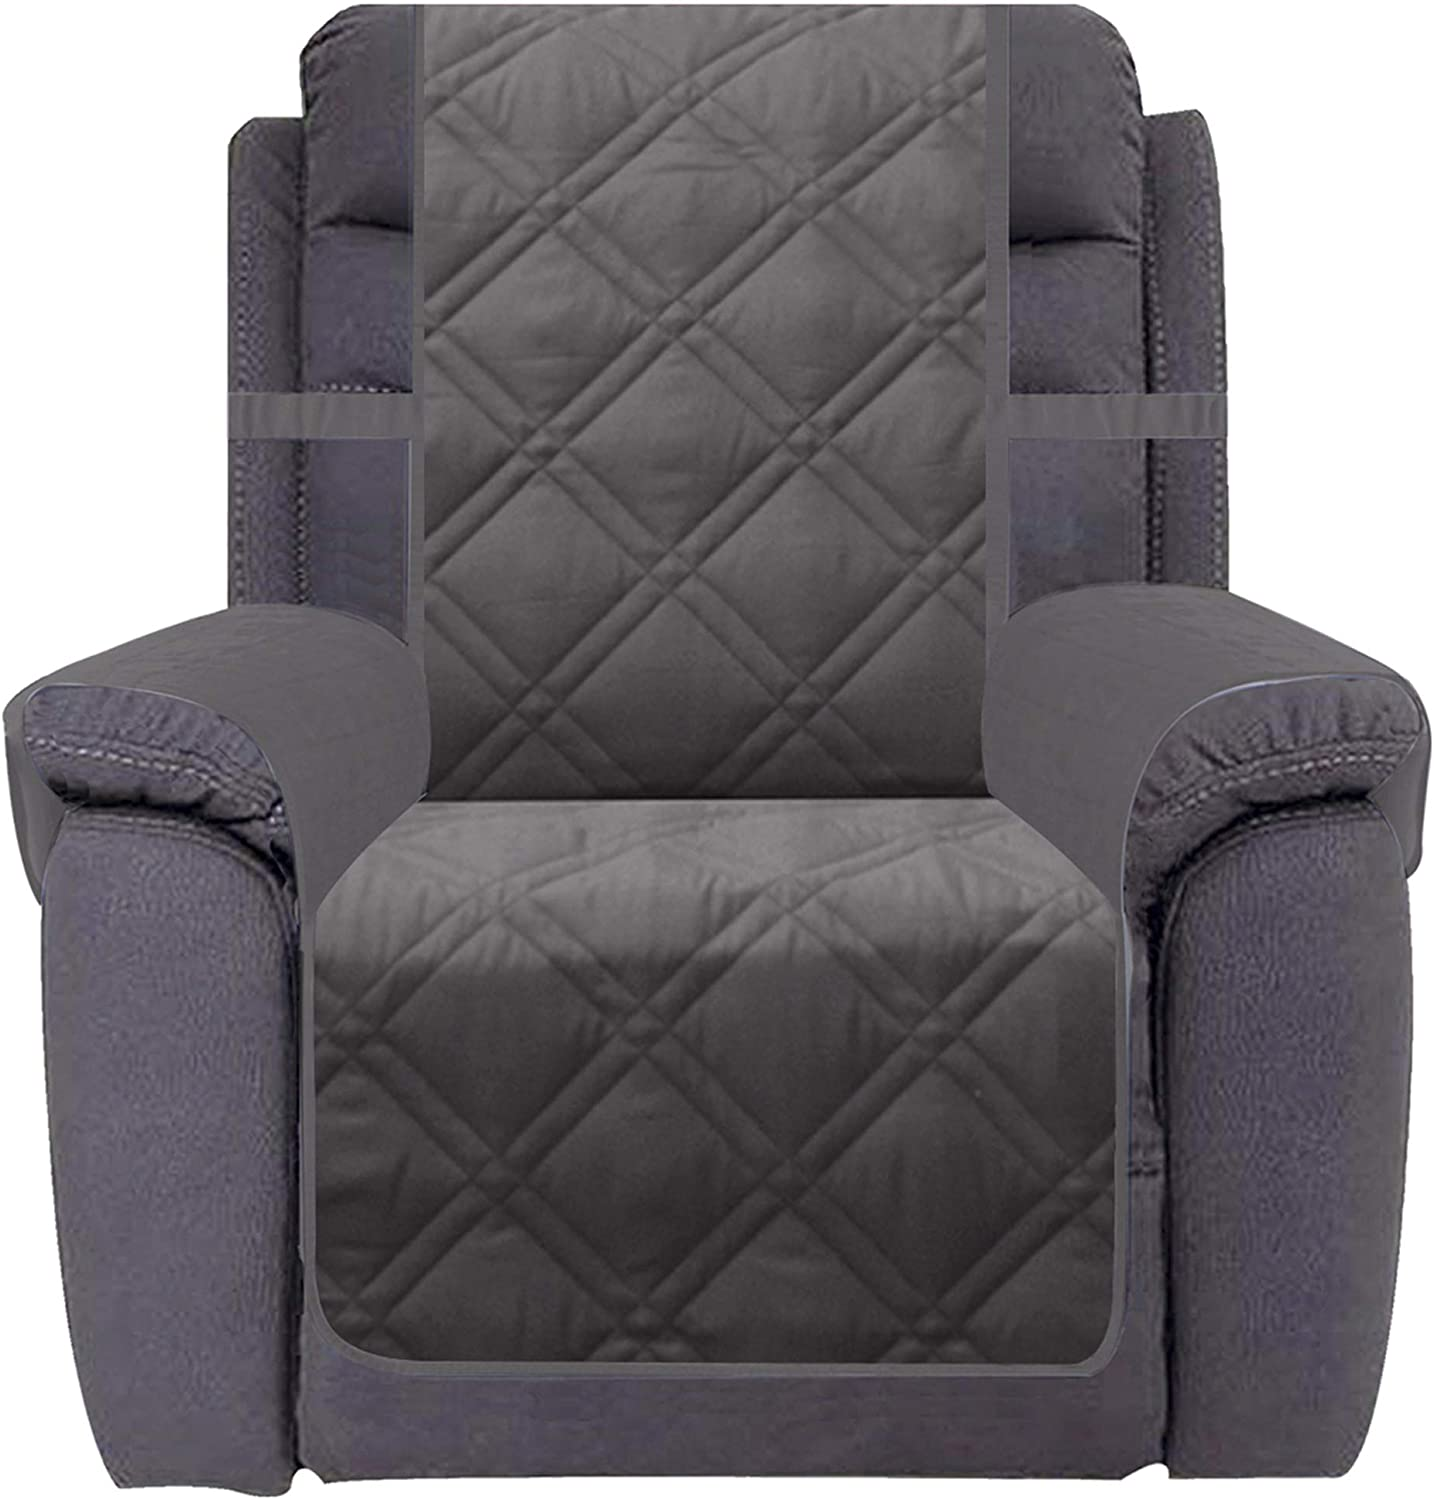 Ameritex New popularity Waterproof Nonslip Recliner Cover Pl Max 80% OFF Stay in Decor Home